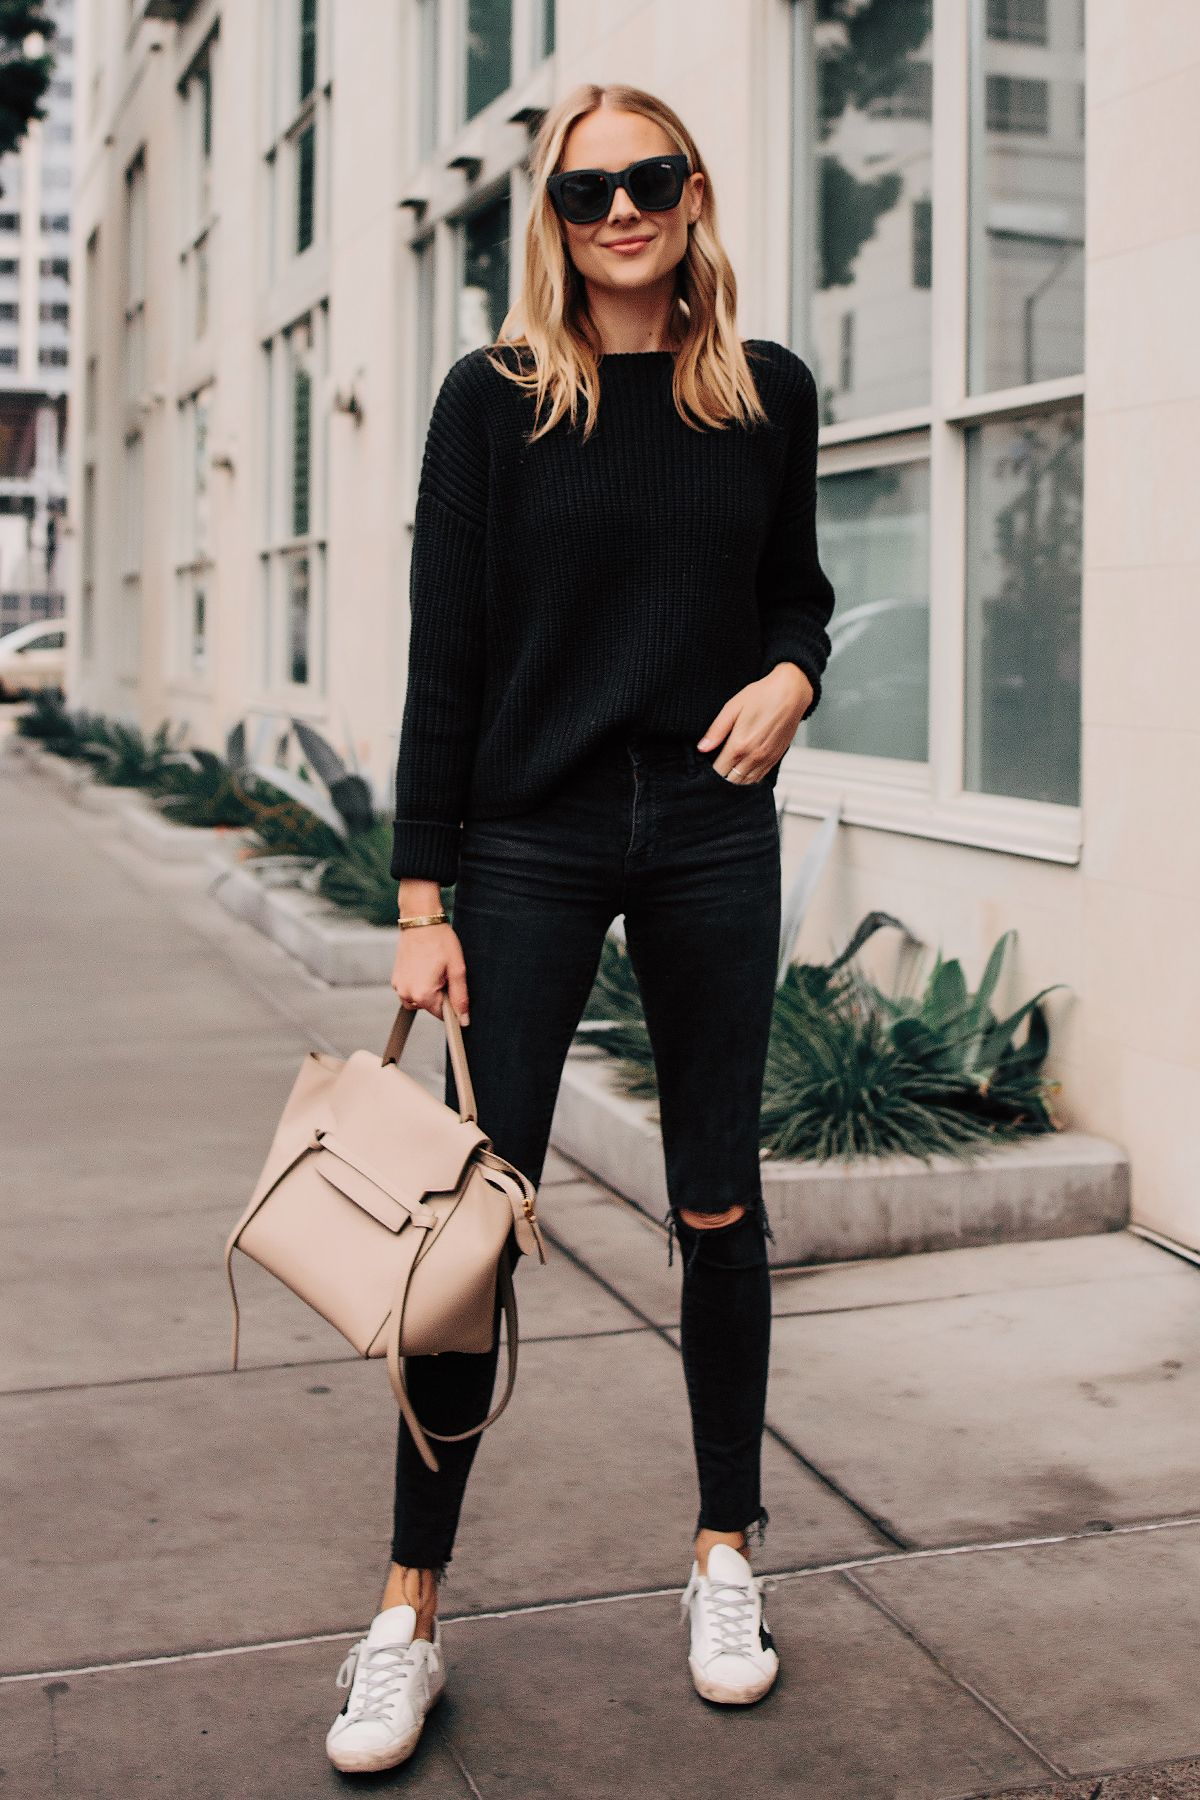 88d01bf5631d Blonde Woman Wearing Black Oversized Sweater Madewell Black Ripped Skinny  Jeans Outfit Golden Goose Sneakers Celine Mini Belt Bag Fashion Jackson San  Diego ...